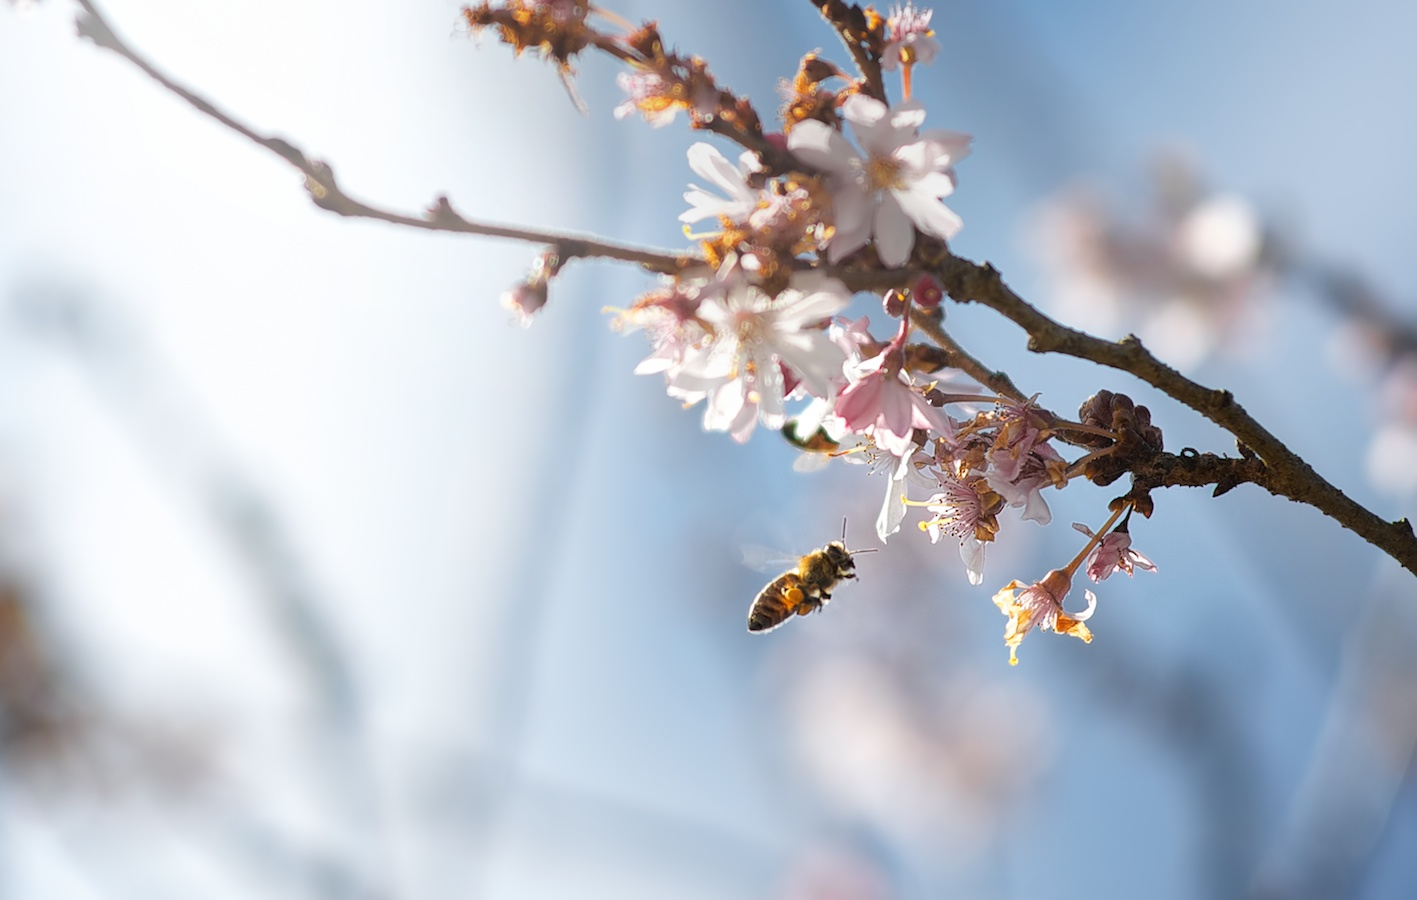 Bee and the Cherry Blossom